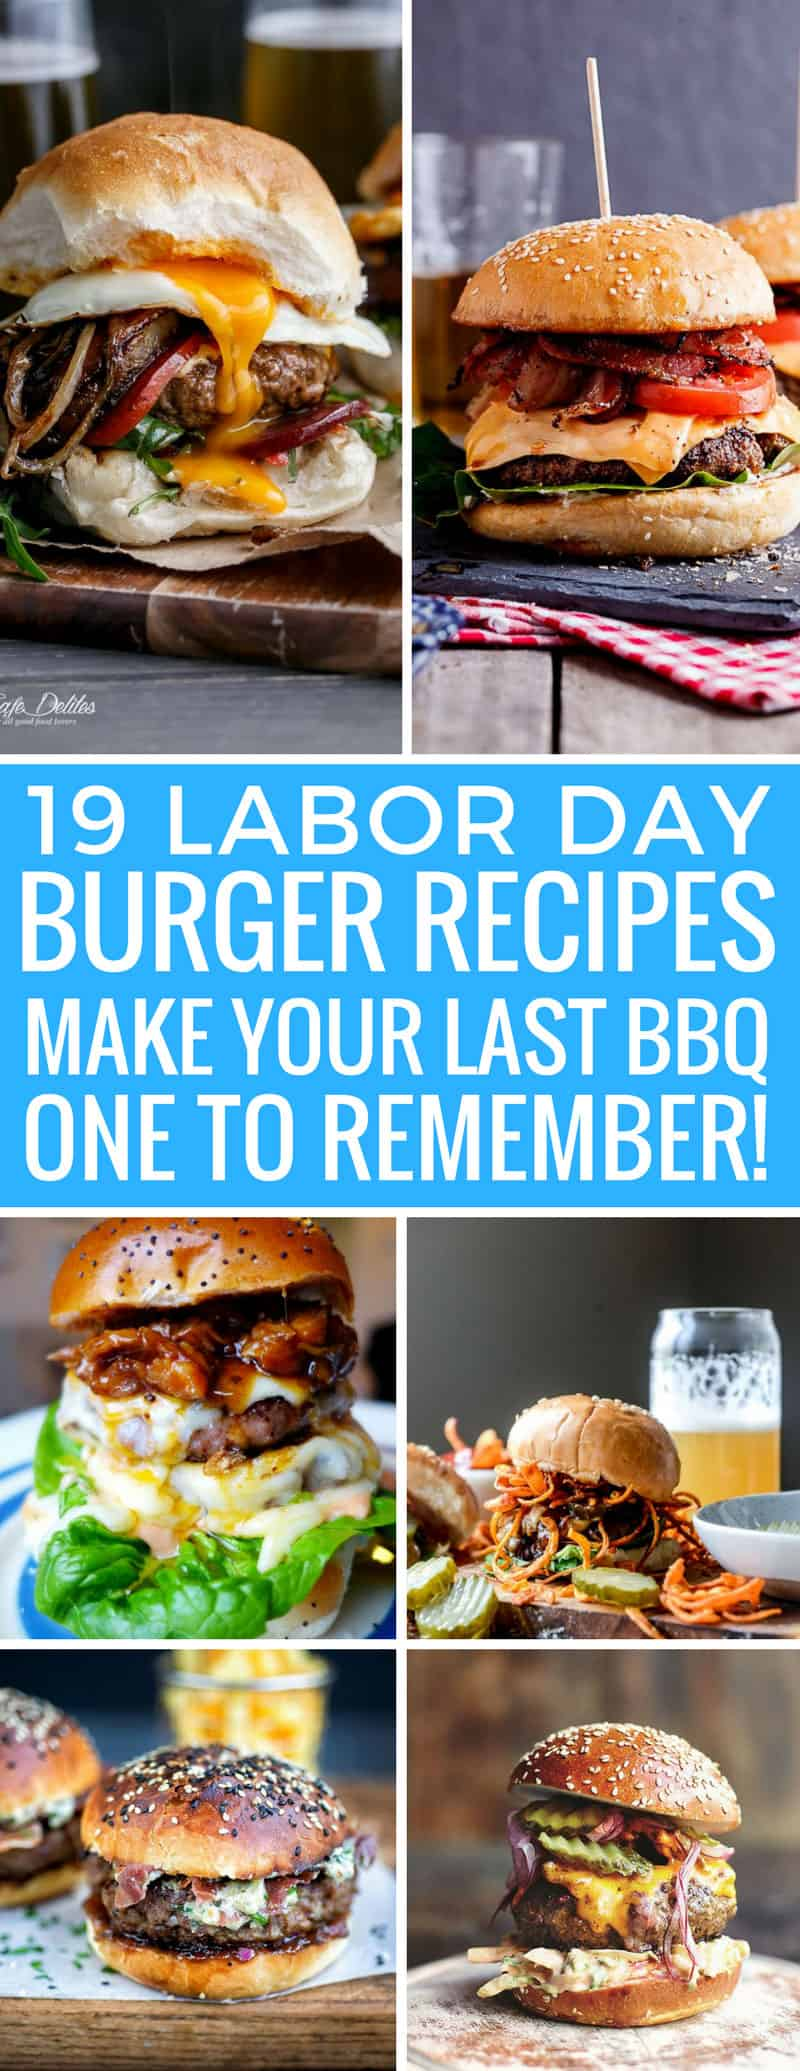 Wow! Hubby is going to have a blast making these Labor Day burger recipes. Can't wait to eat them! Thanks for sharing!